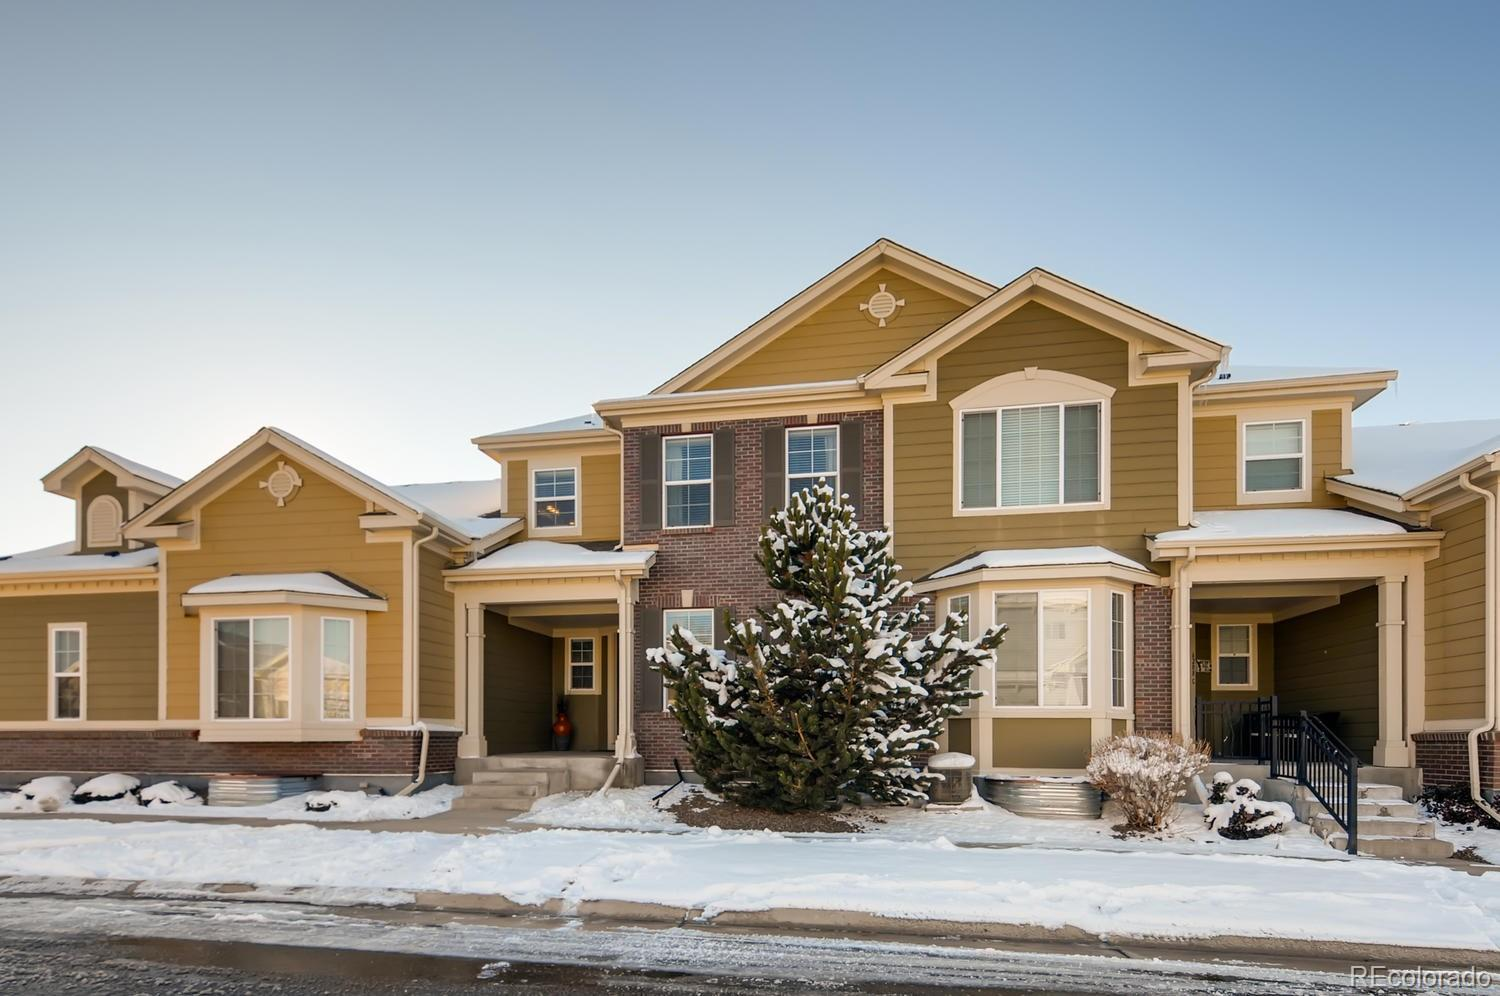 MLS# 7221066 - 34 - 6288 Orchard Court #B, Arvada, CO 80403